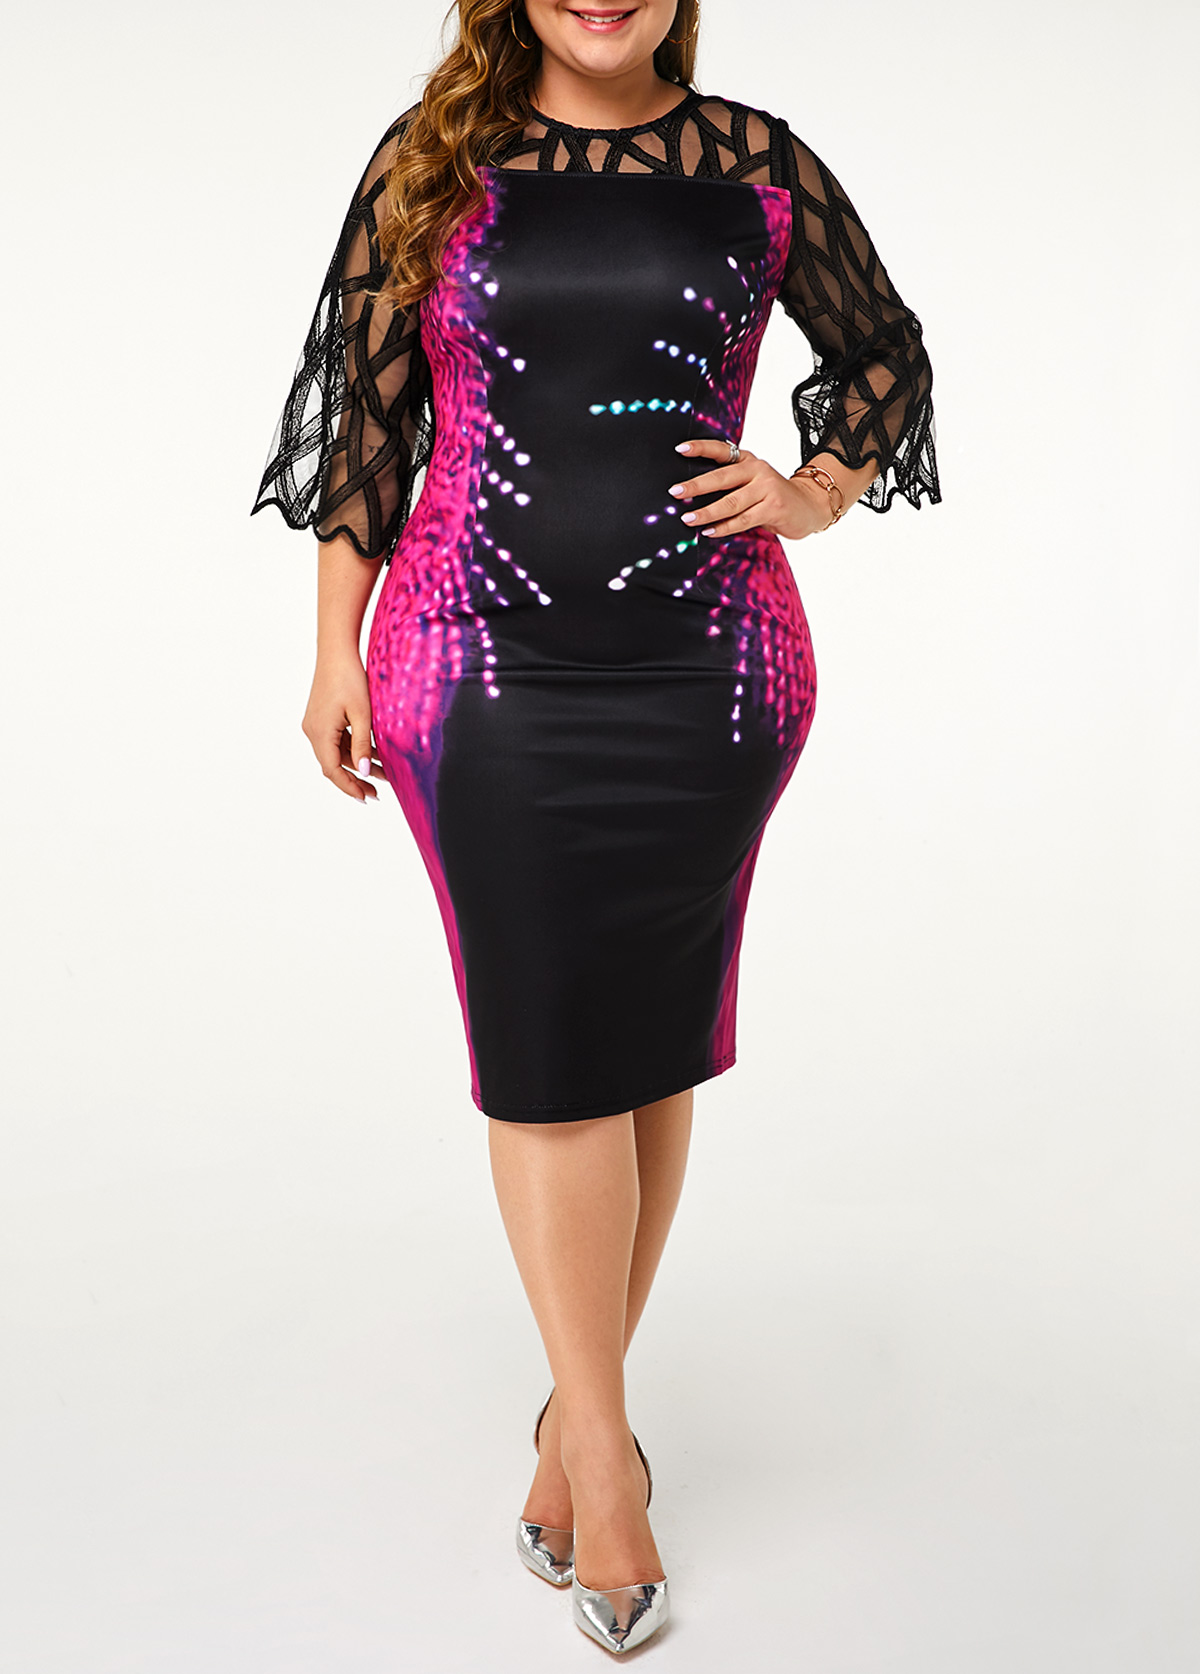 Plus Size Three Quarter Sleeve Printed Black Dress